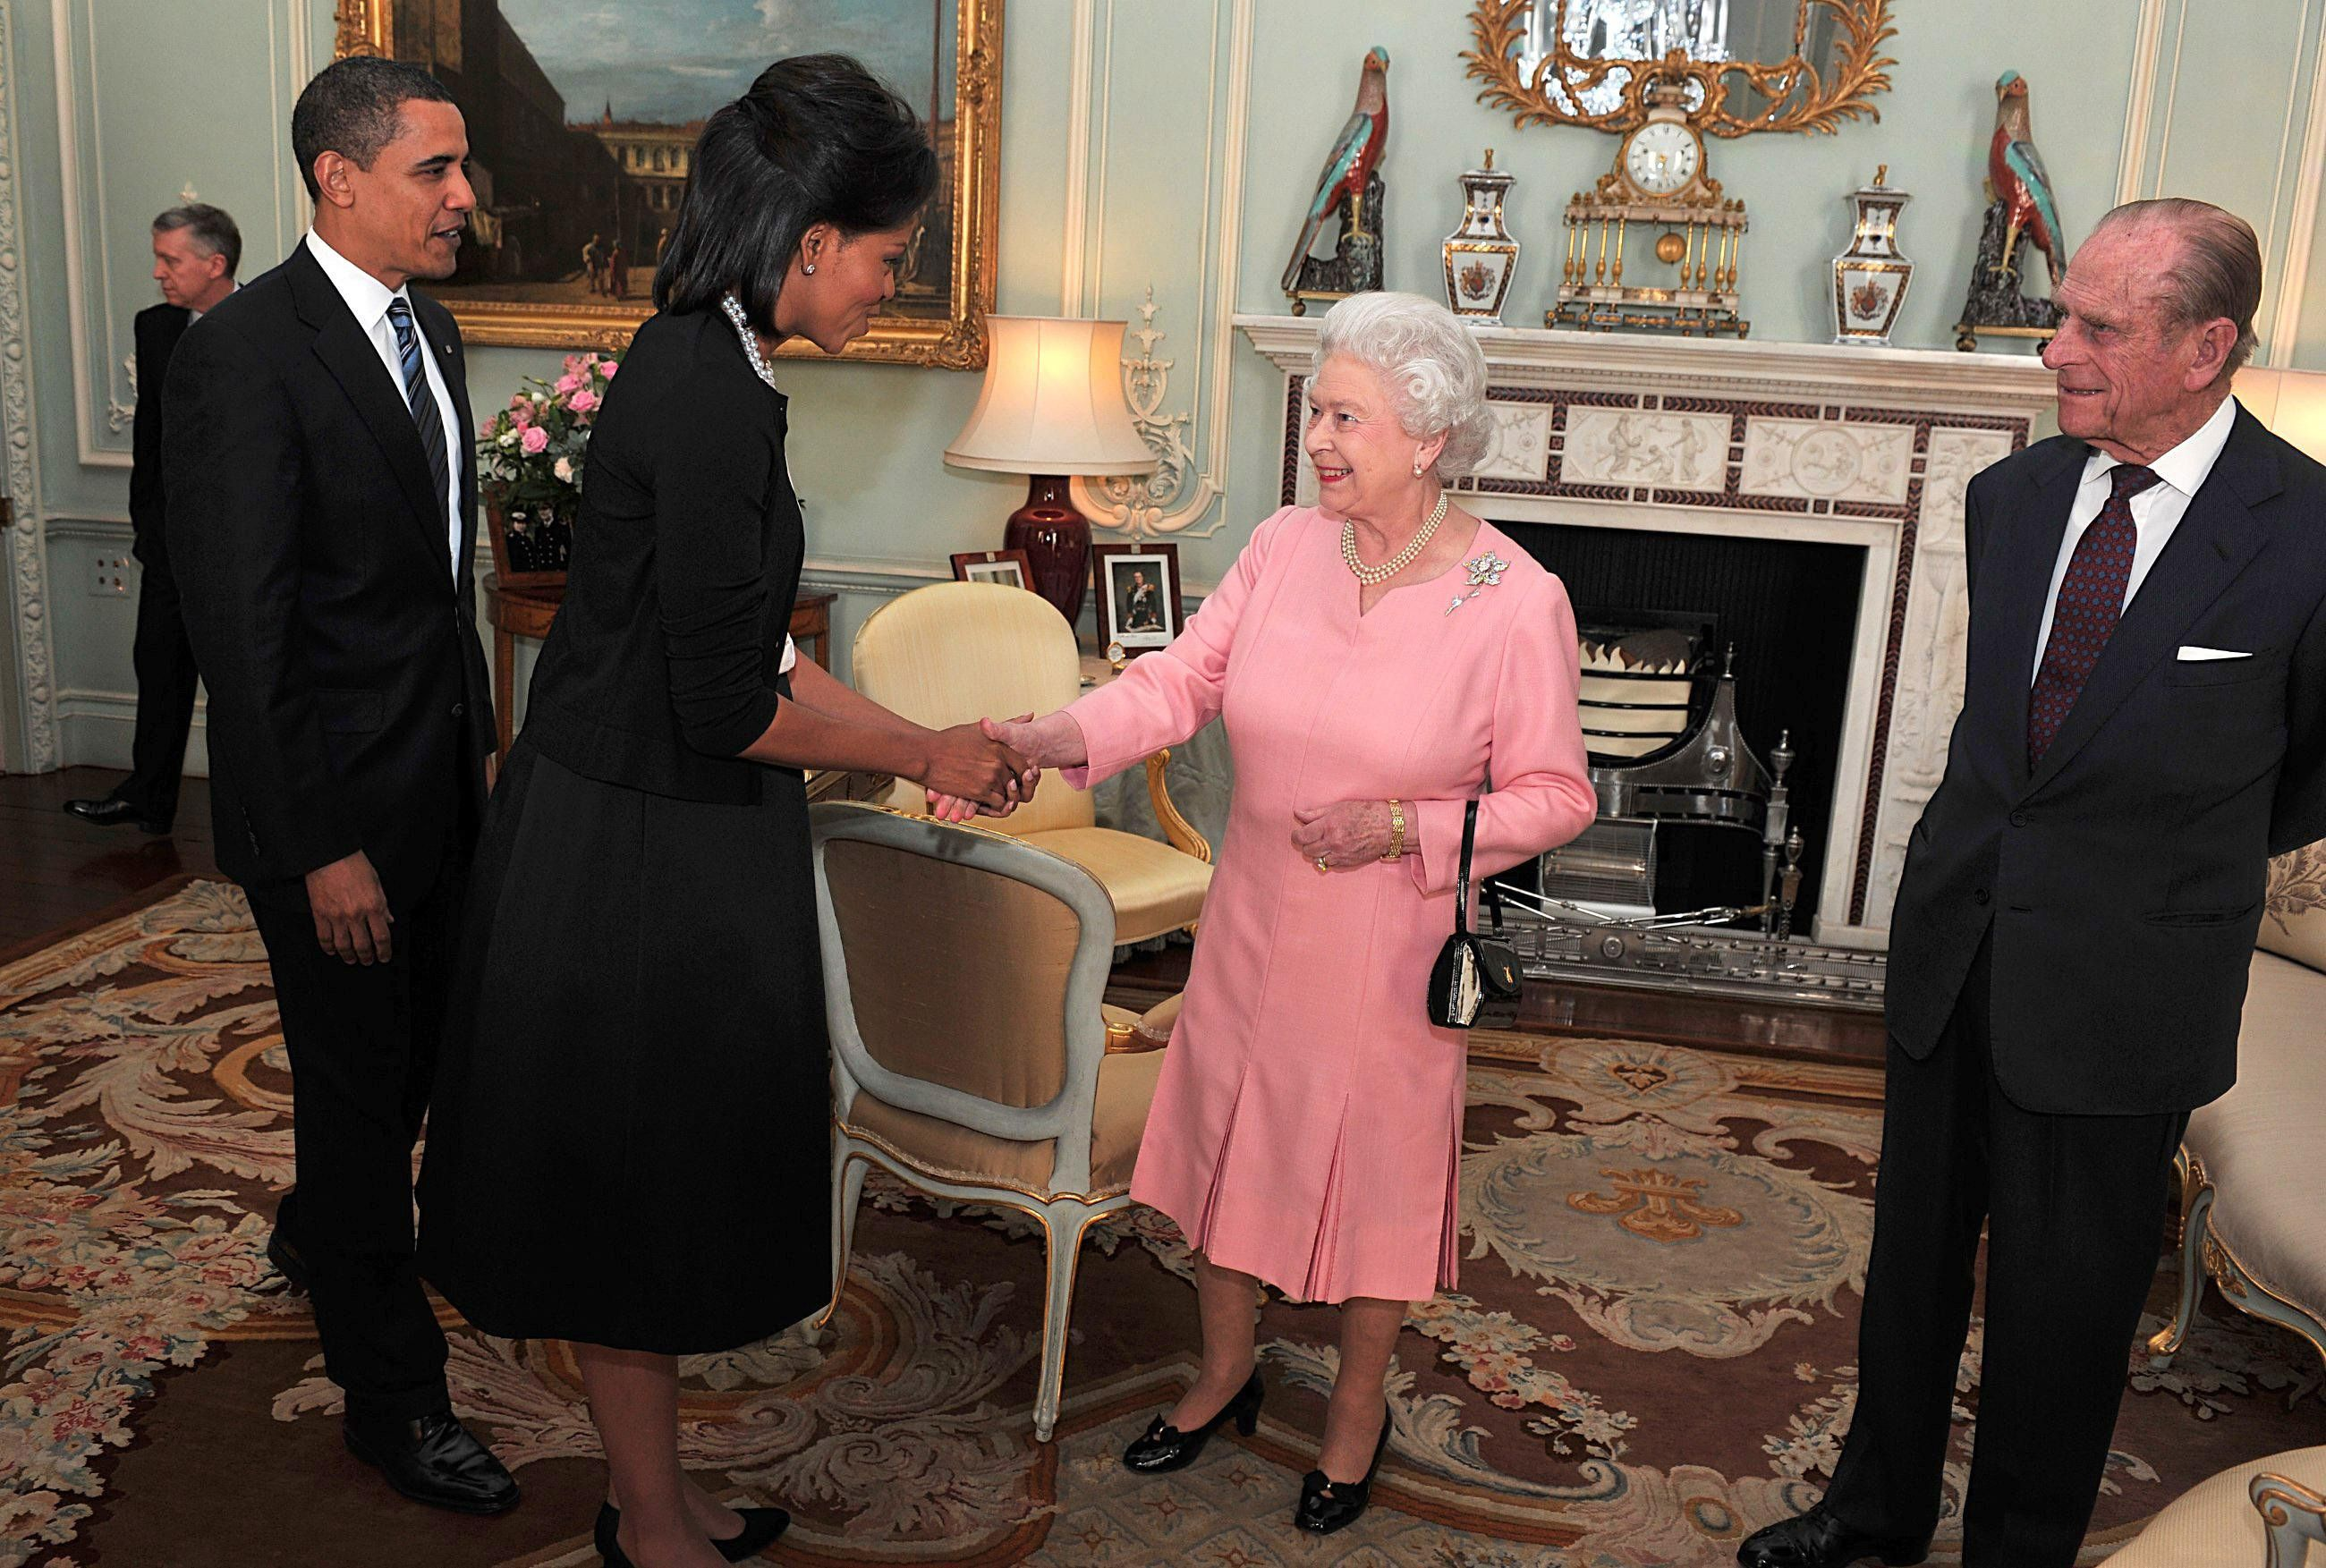 Barack Obama and Michelle Obama meet with Queen Elizabeth II and Prince Philip, Duke of Edinburgh at Buckingham Palace on April 1, 2009 in London, England. | Photo: Getty Images.